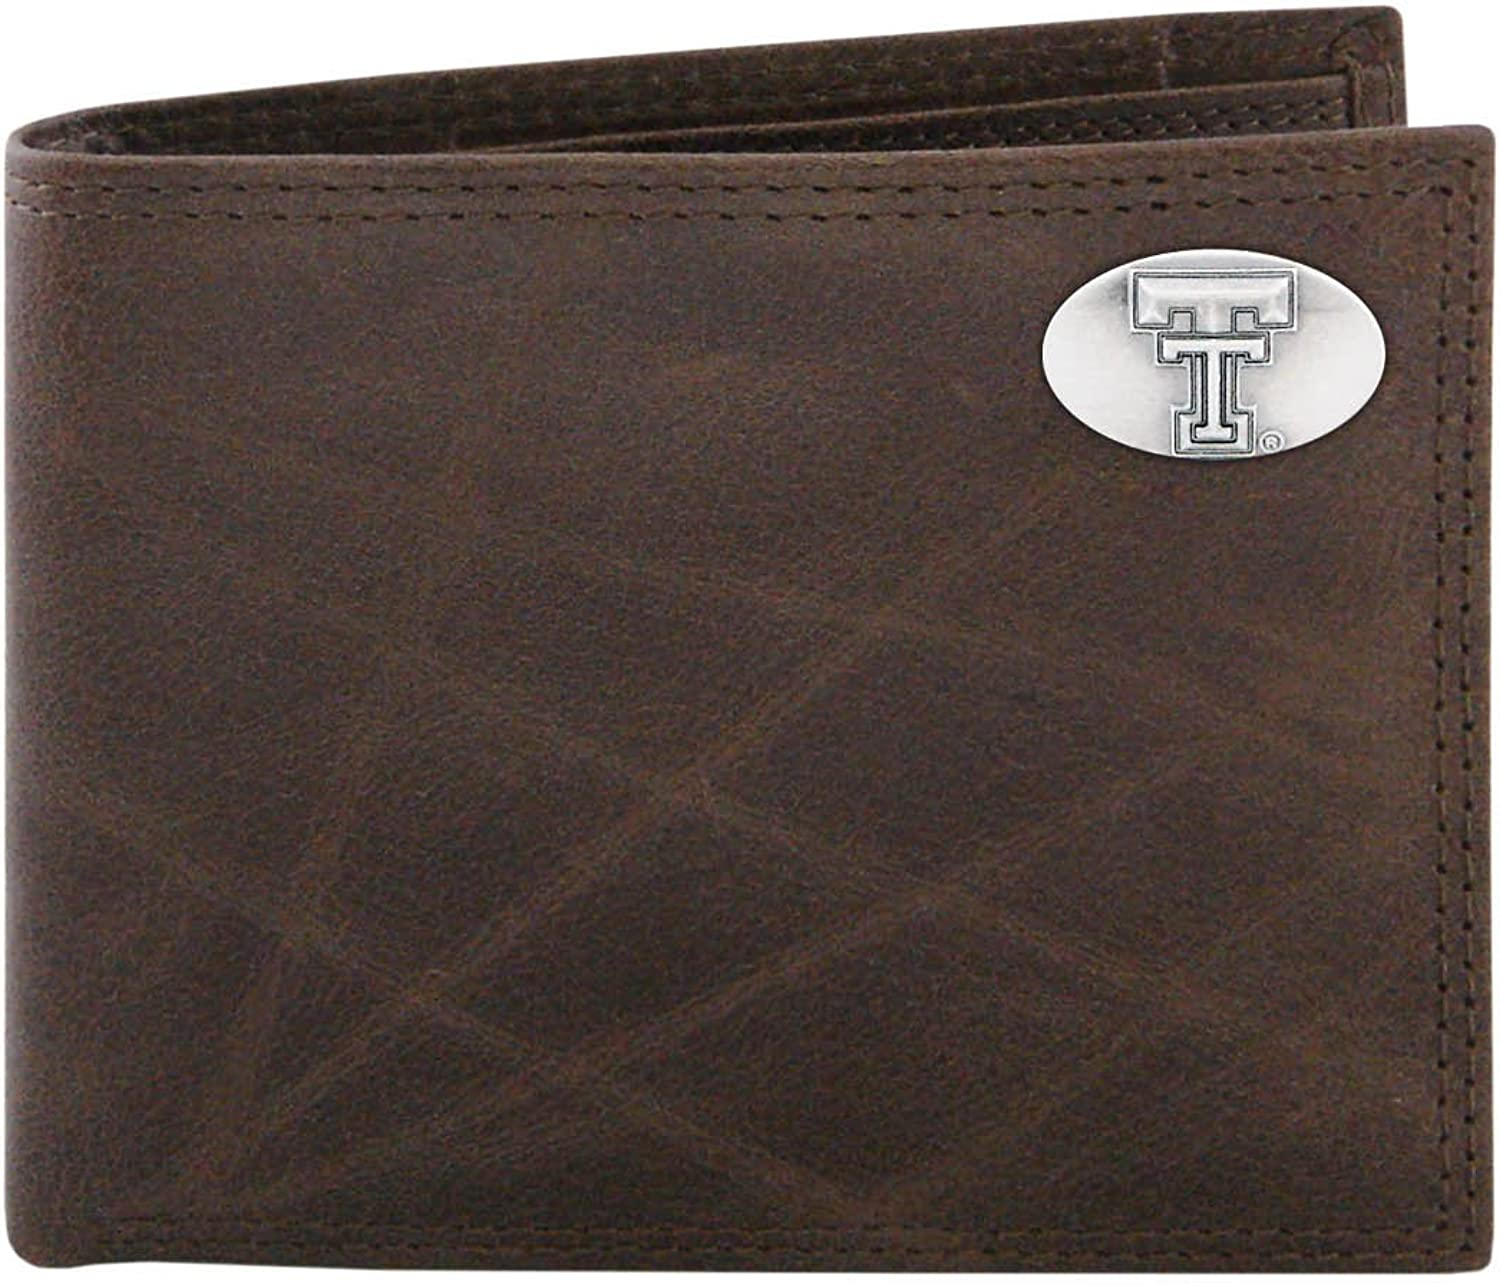 NCAA Texas Tech Red Raiders ZepPro Wrinkle Leather Bifold Concho Wallet (Brown)